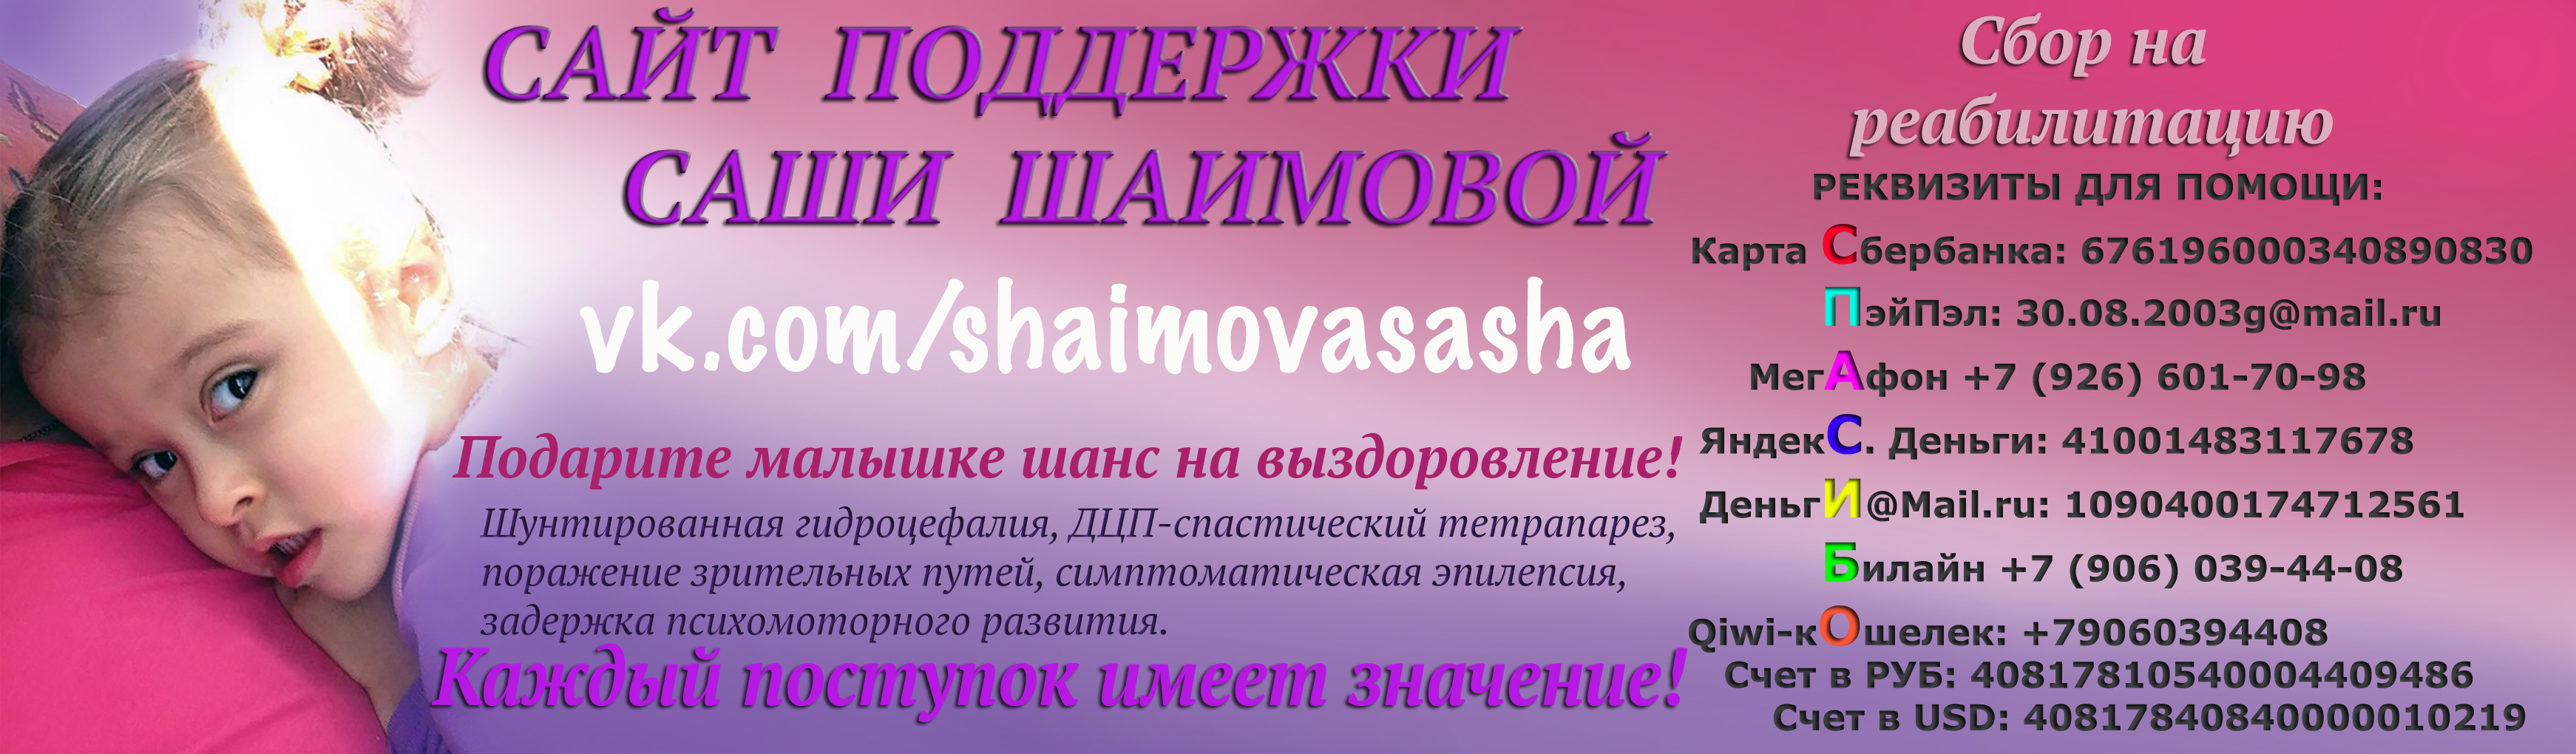 WEBSITE TO SUPPORT SASHA SHAIMOVA